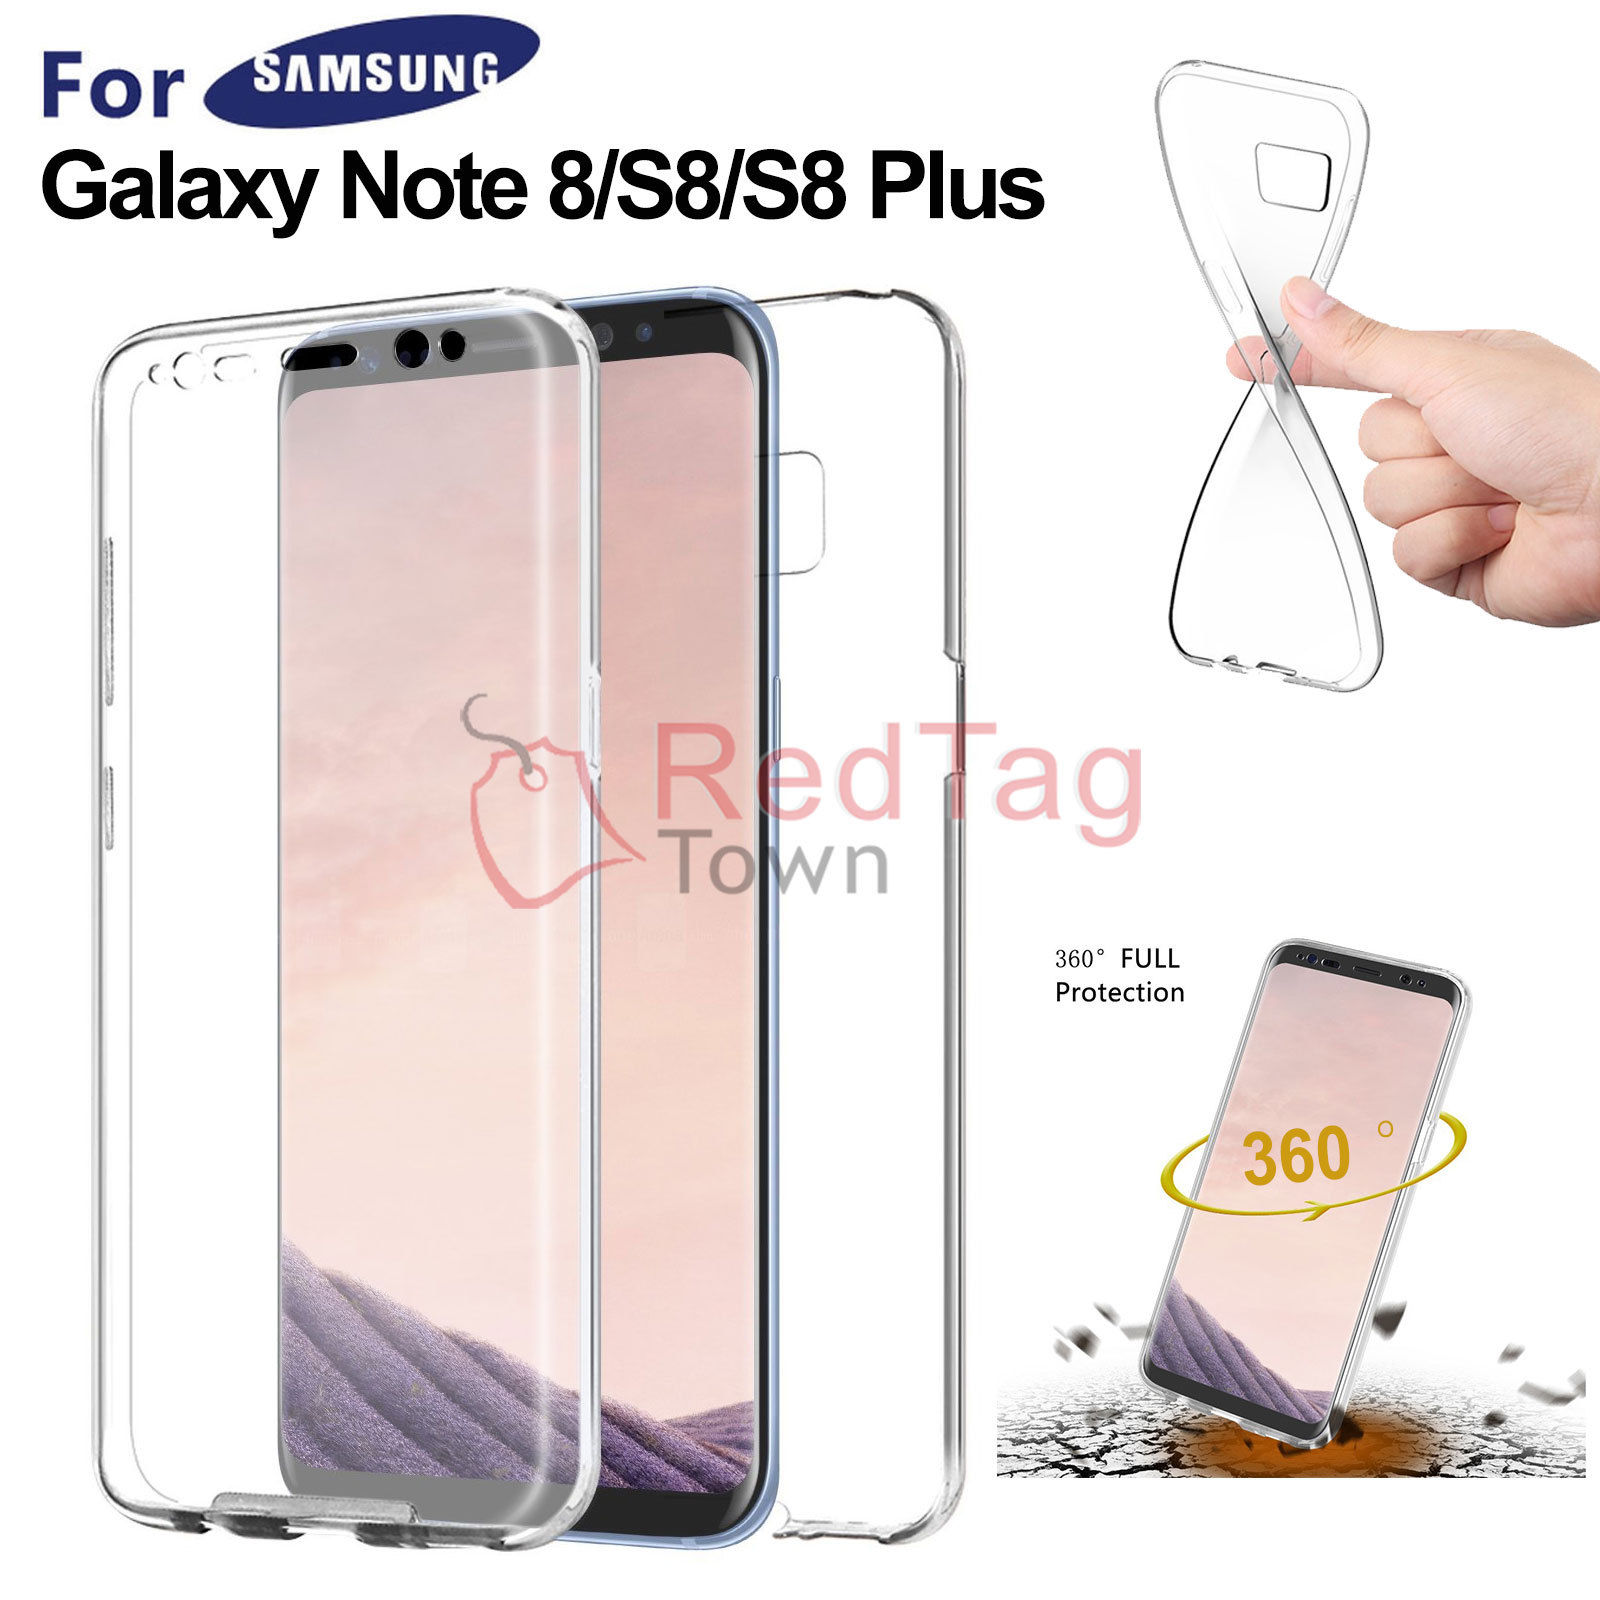 new product cfb9c ebe8b Details about Crystal Clear Full Body Protective Case Cover For Samsung  Galaxy S8 Plus Note 8